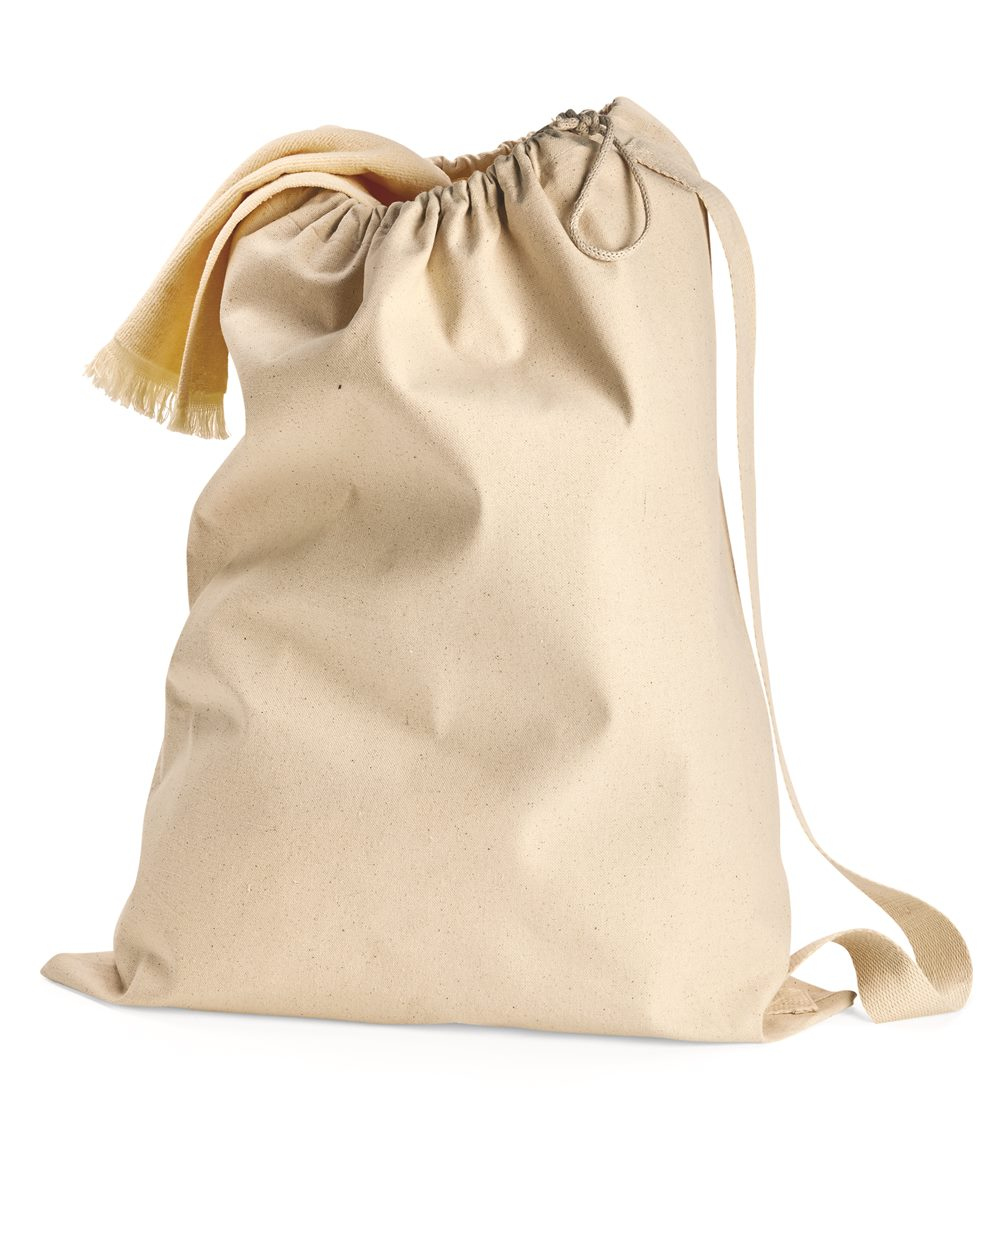 OAD OAD109 - Small Laundry Bag